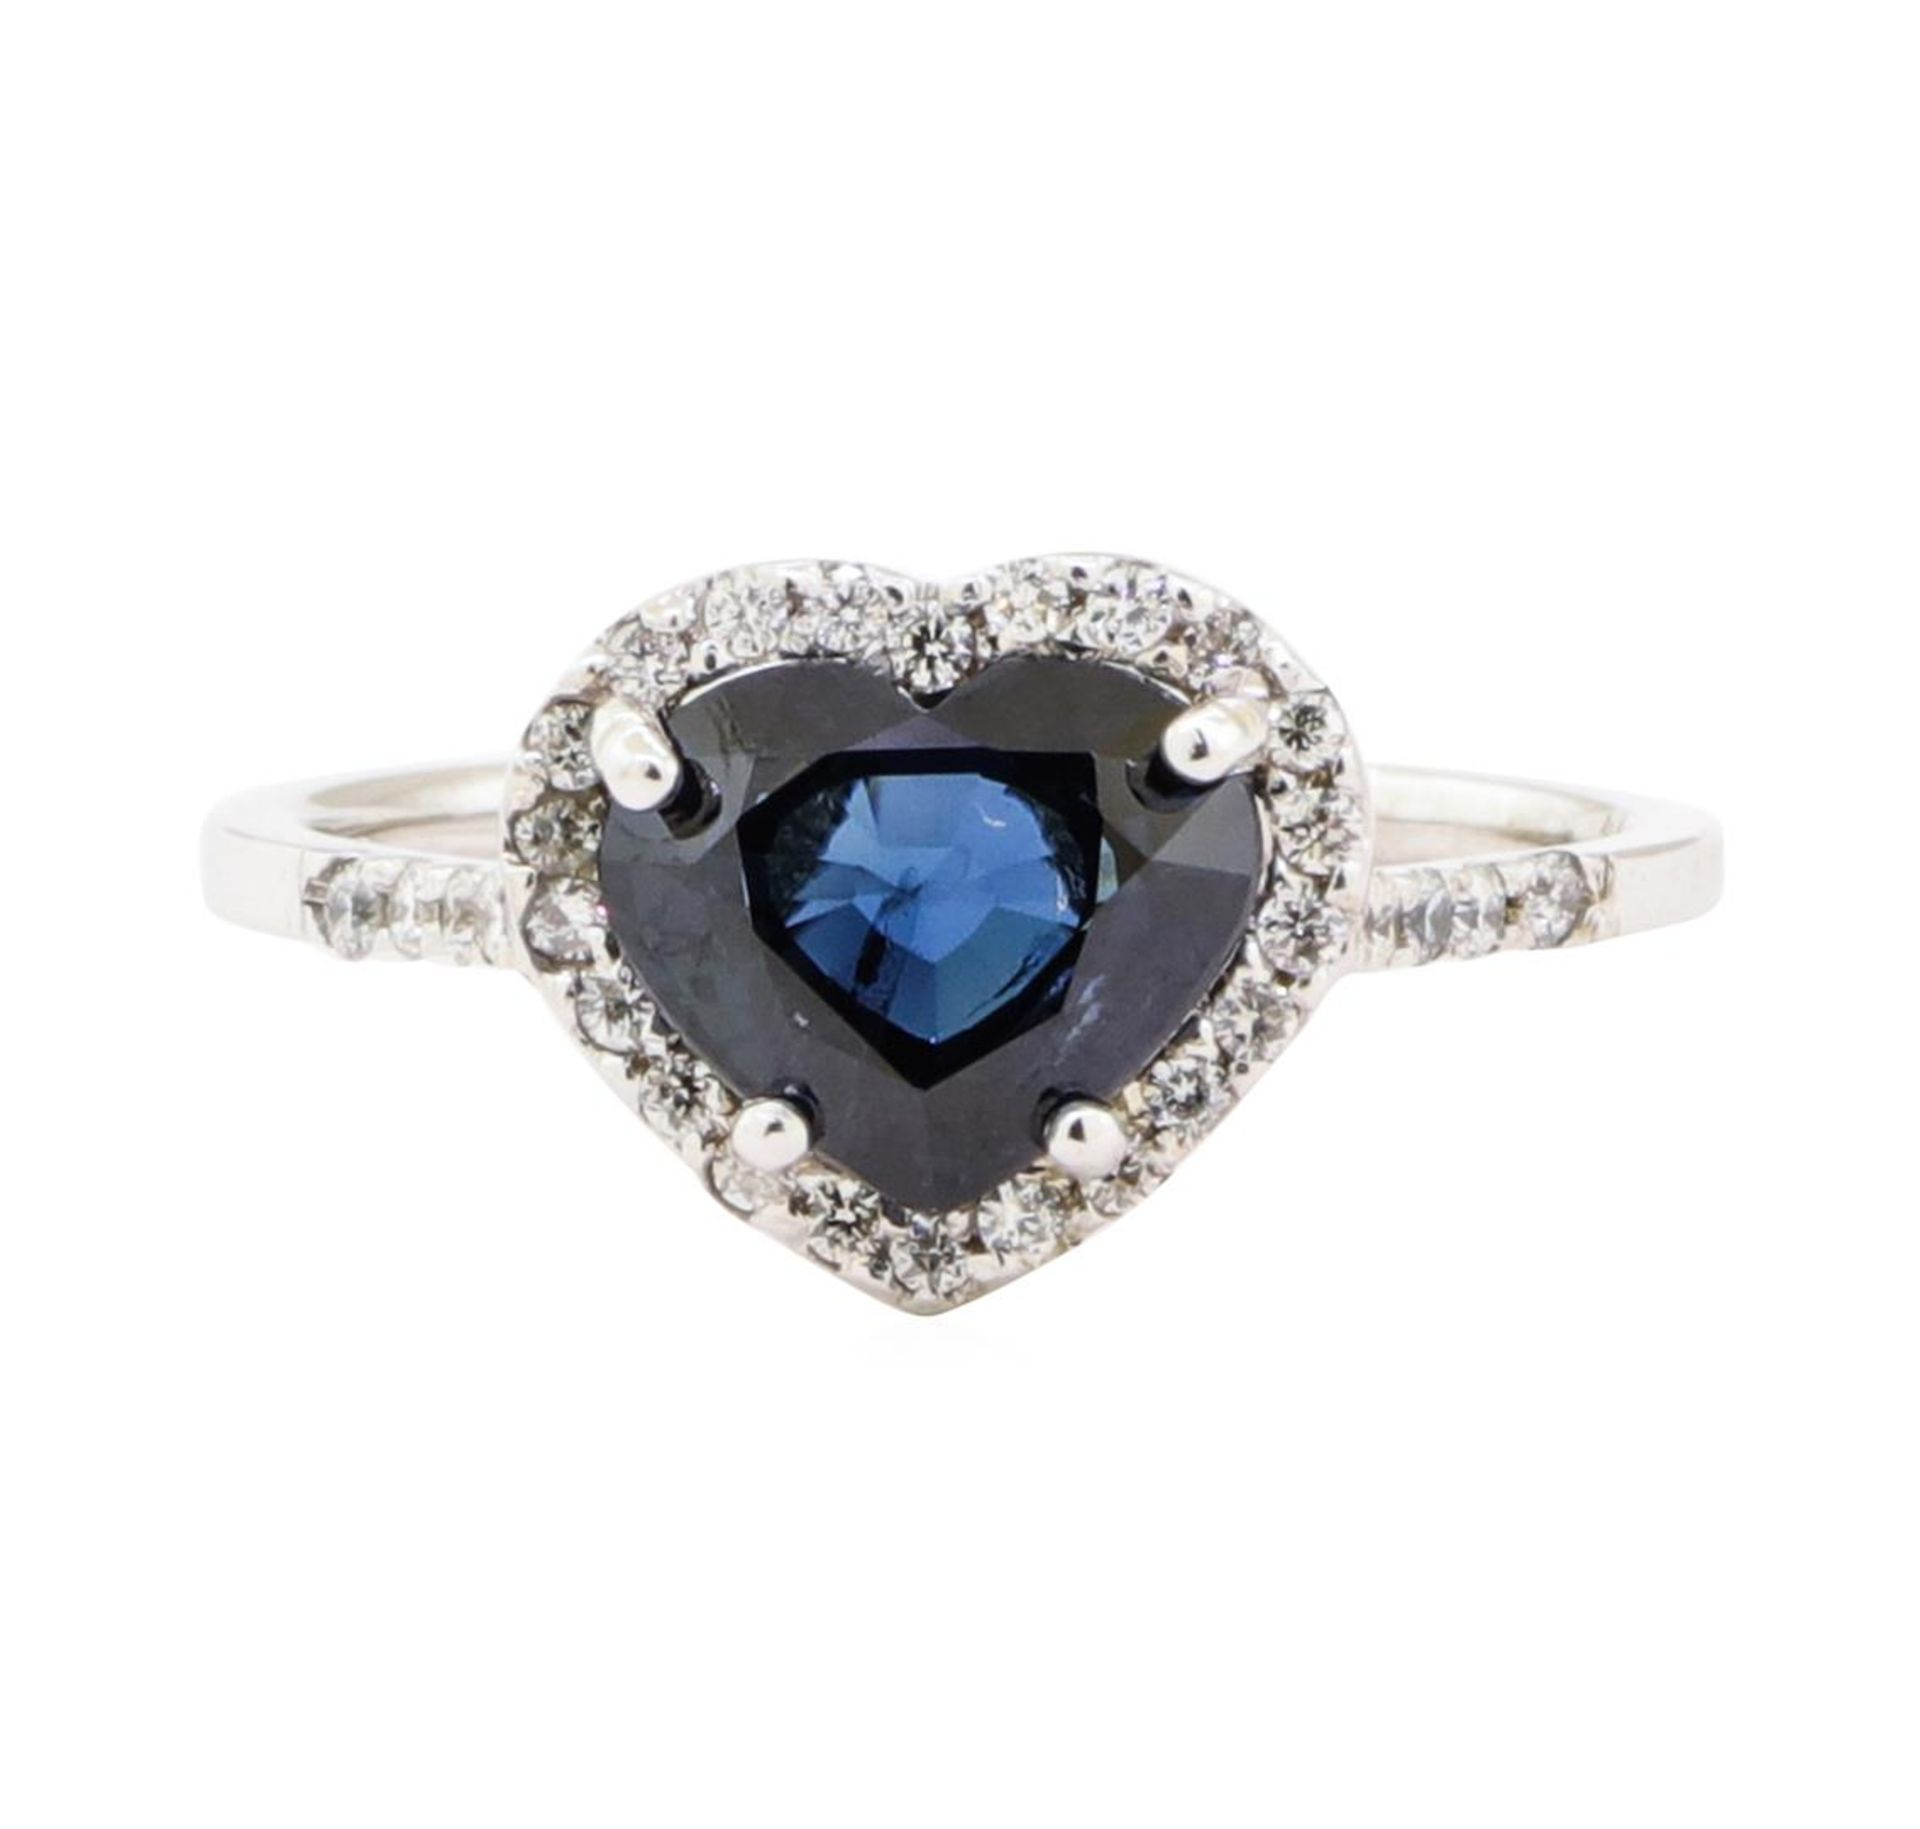 2.66 ctw Sapphire And Diamond Ring - 18KT White Gold - Image 2 of 5